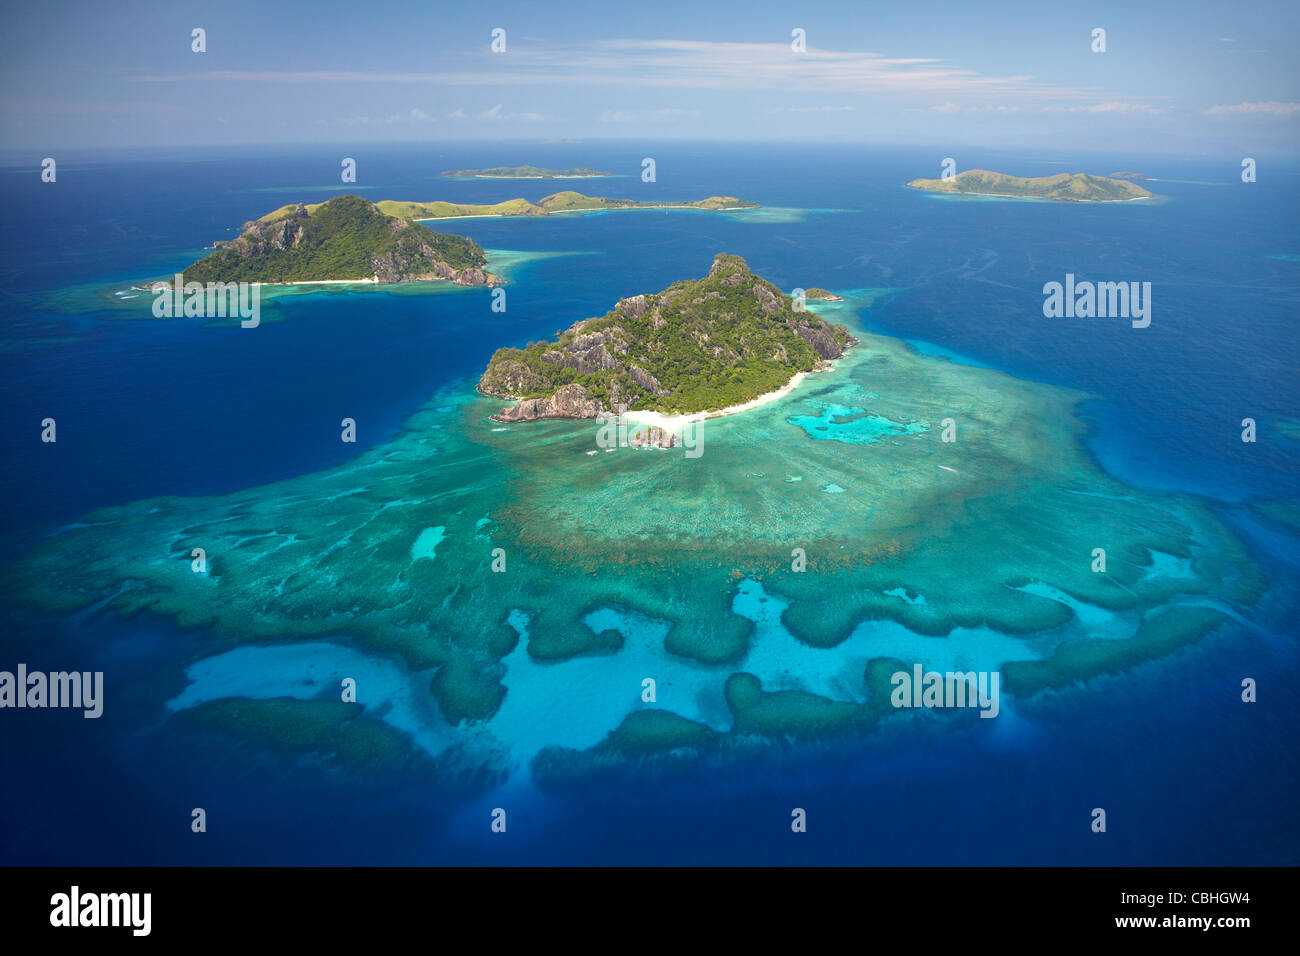 Monuriki Island and coral reef, Mamanuca Islands, Fiji, South Pacific - aerial - Stock Image